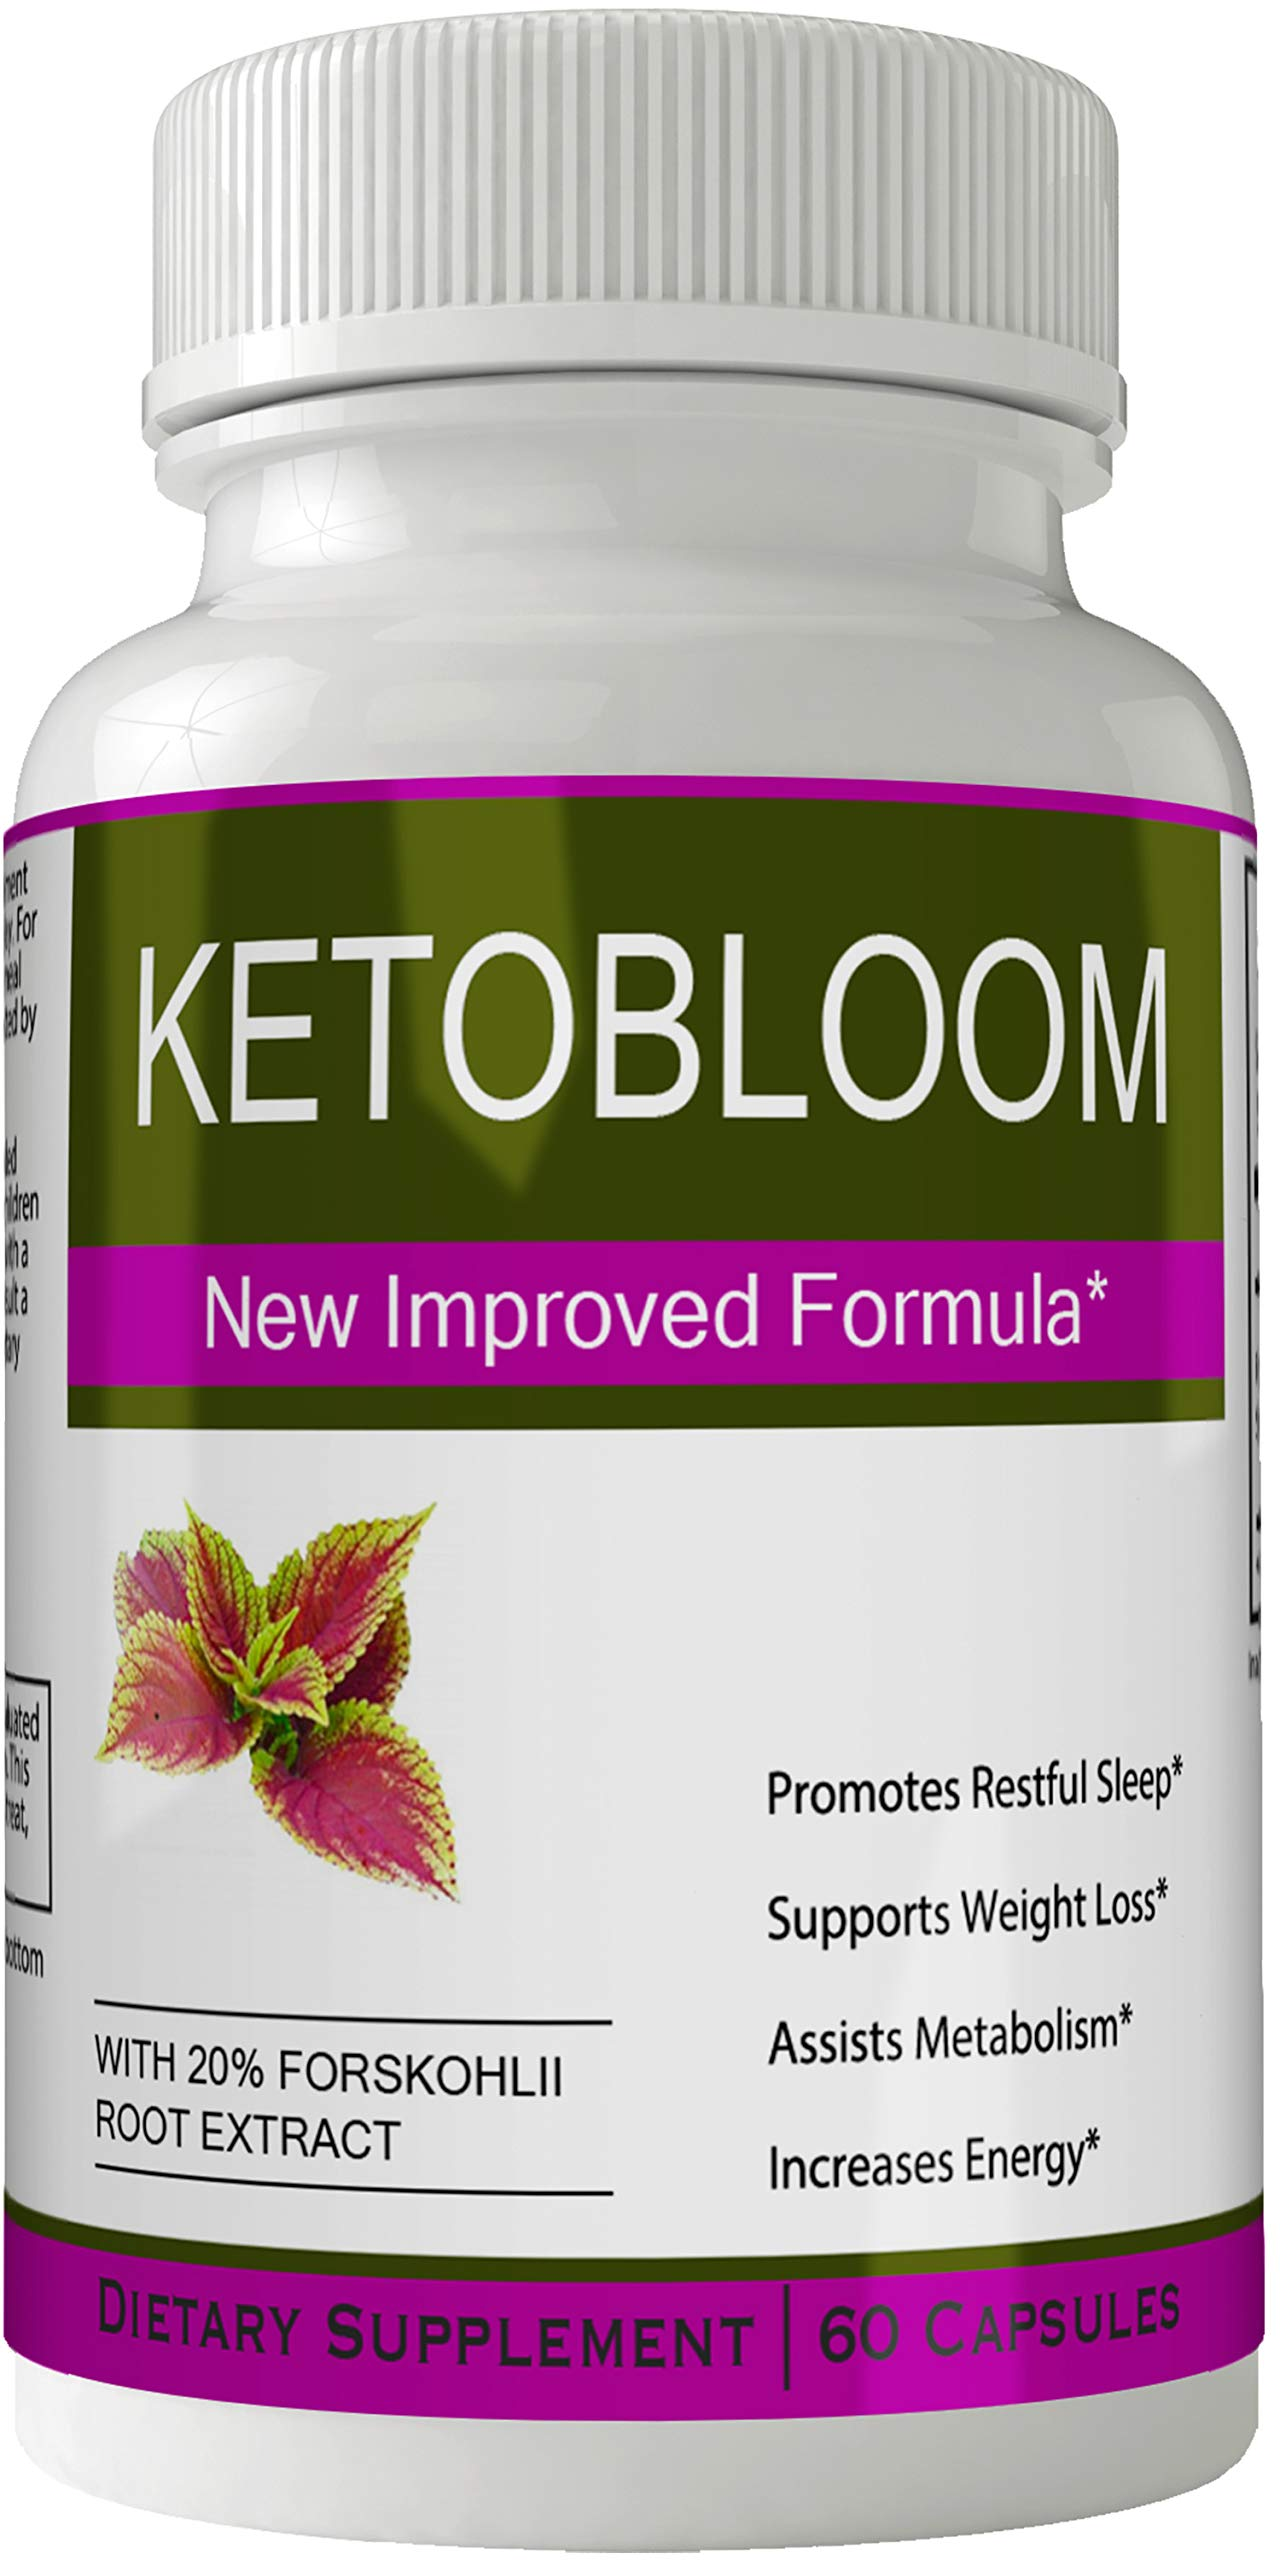 Ketobloom Forskolin for Weight Loss Diet Pills Supplement Capsules with Premium Forskolin Extract Tablets | Keto Bloom High Quality Natural Weightloss